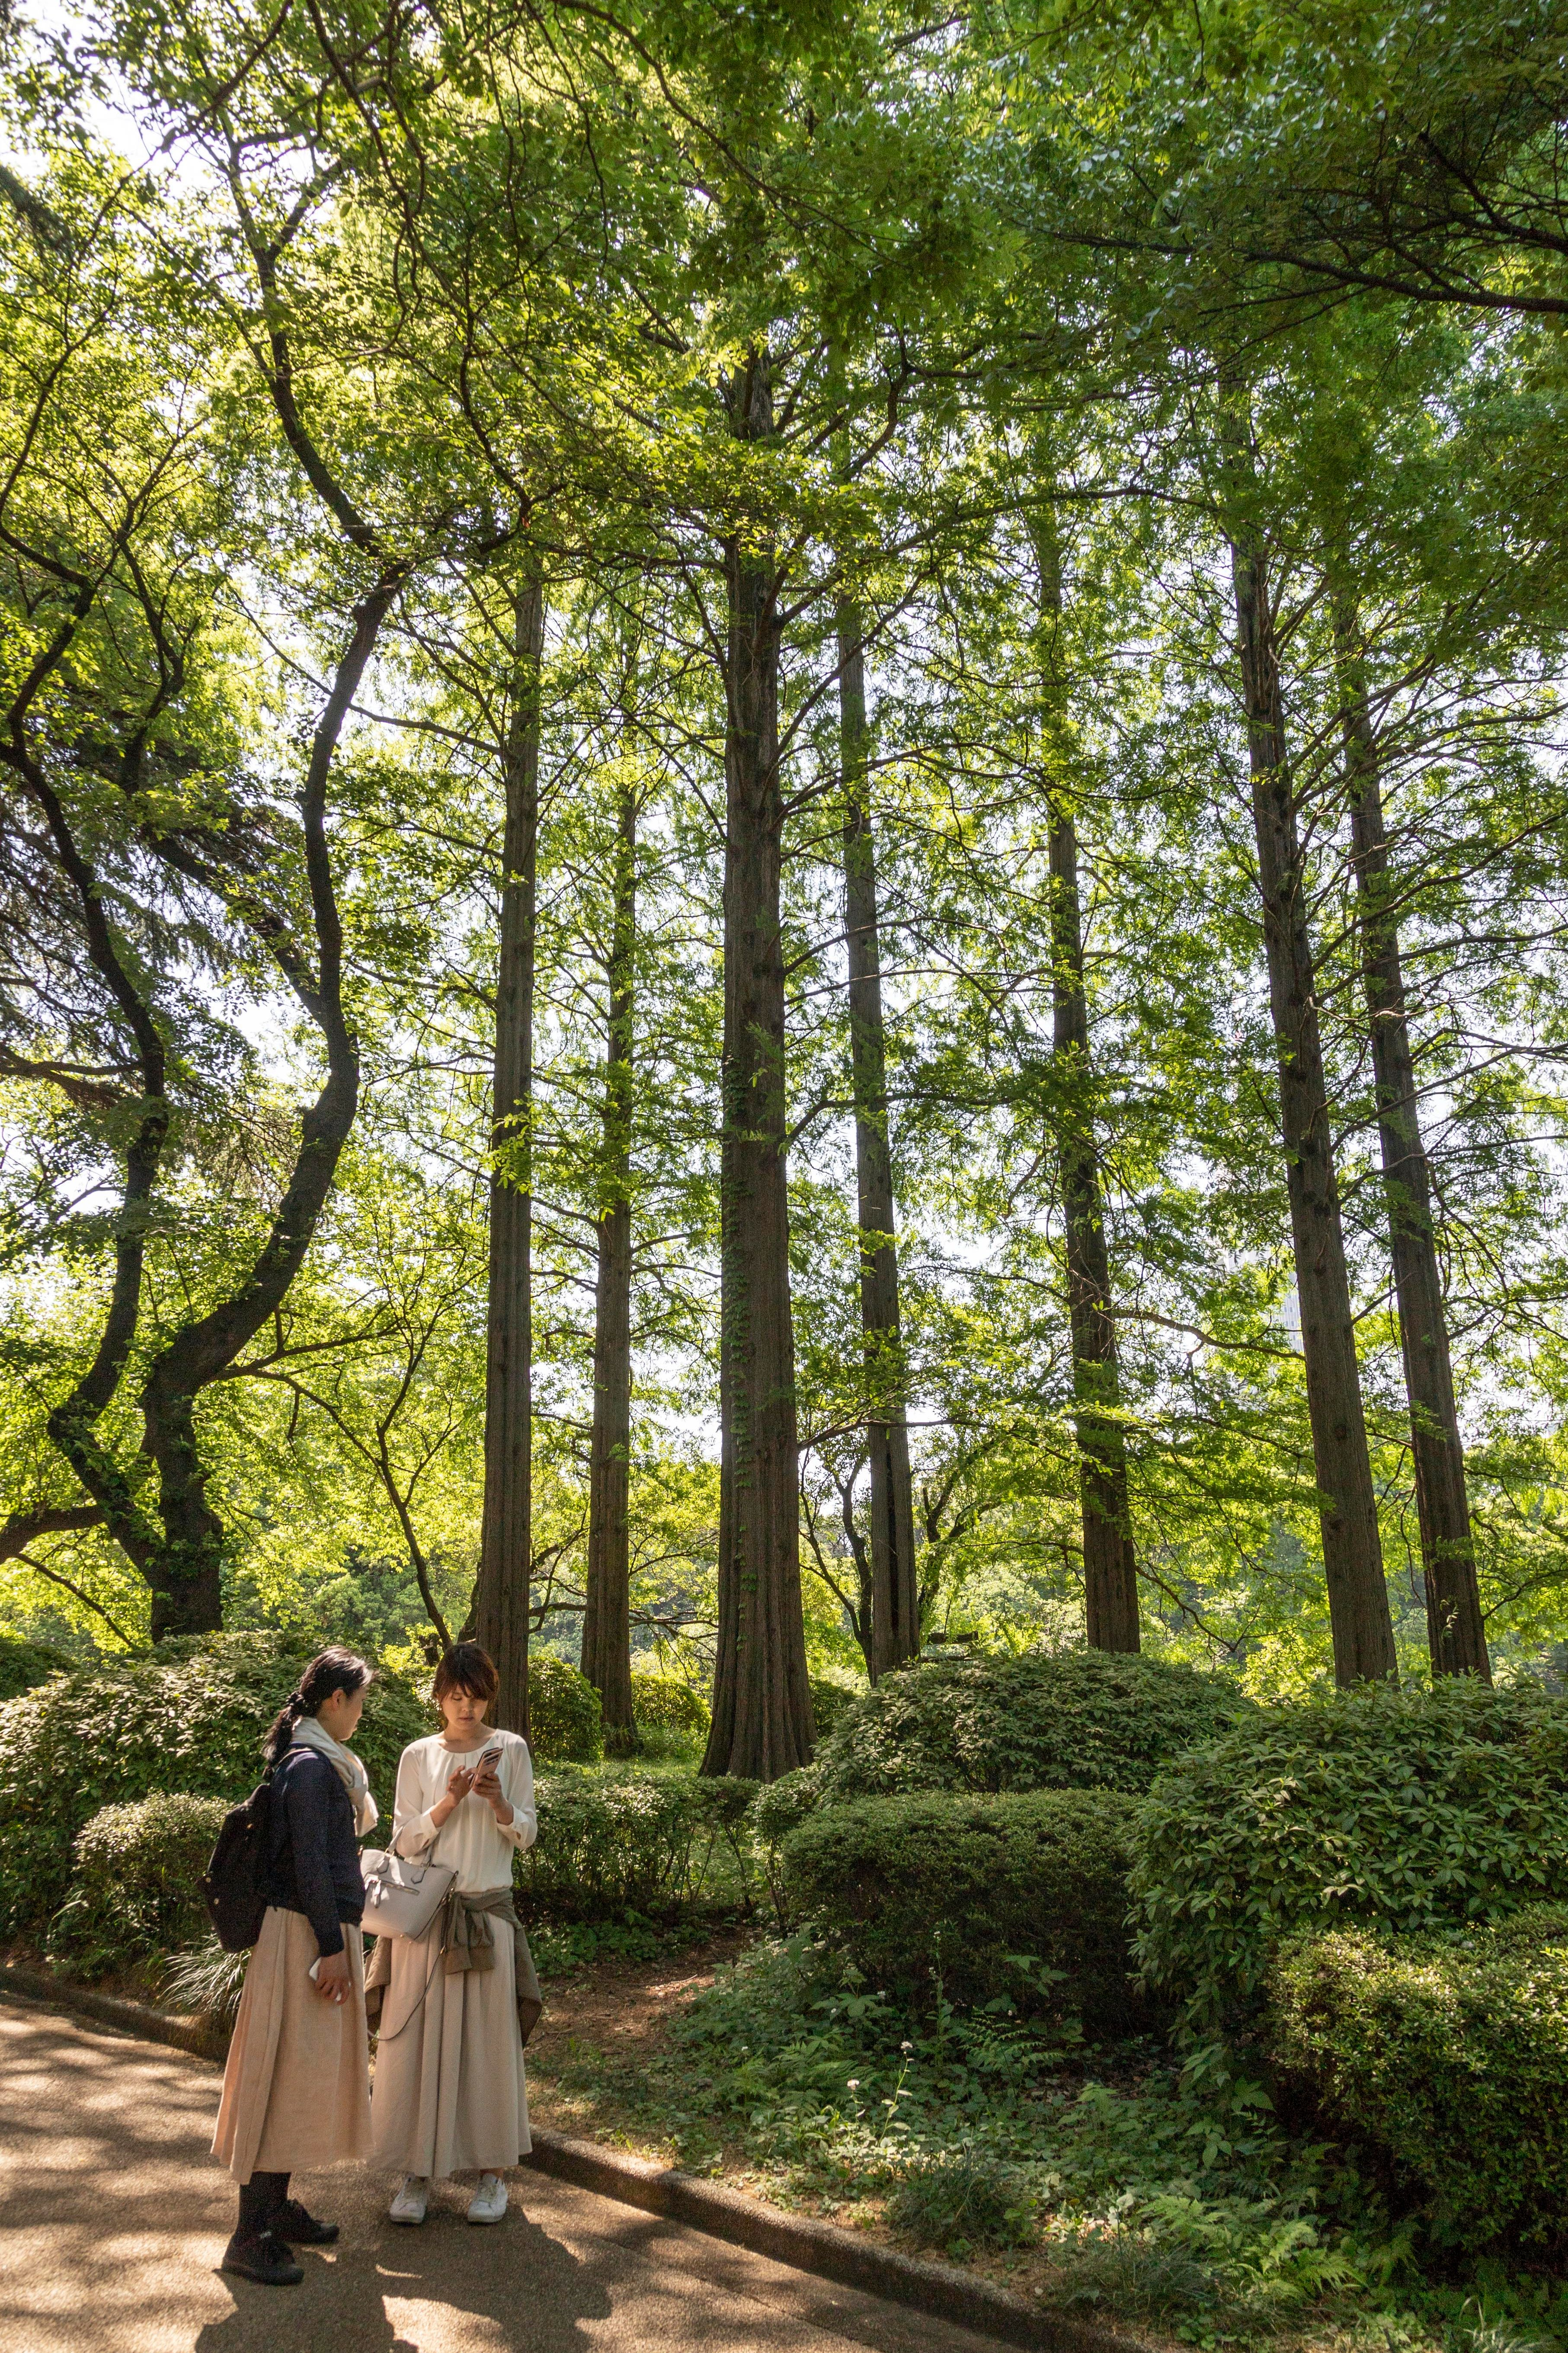 Green. I miss you. Sweet memories of our week in Japan - Shinjuku Gyoen park on a lovely #Spring Saturday afternoon. . . #travel #travelphotography #japan #japantravel #photography #nofilter #Canon #Canon6Dmkii #CanonEF24-105f4 #ig_captures_nature #photographer